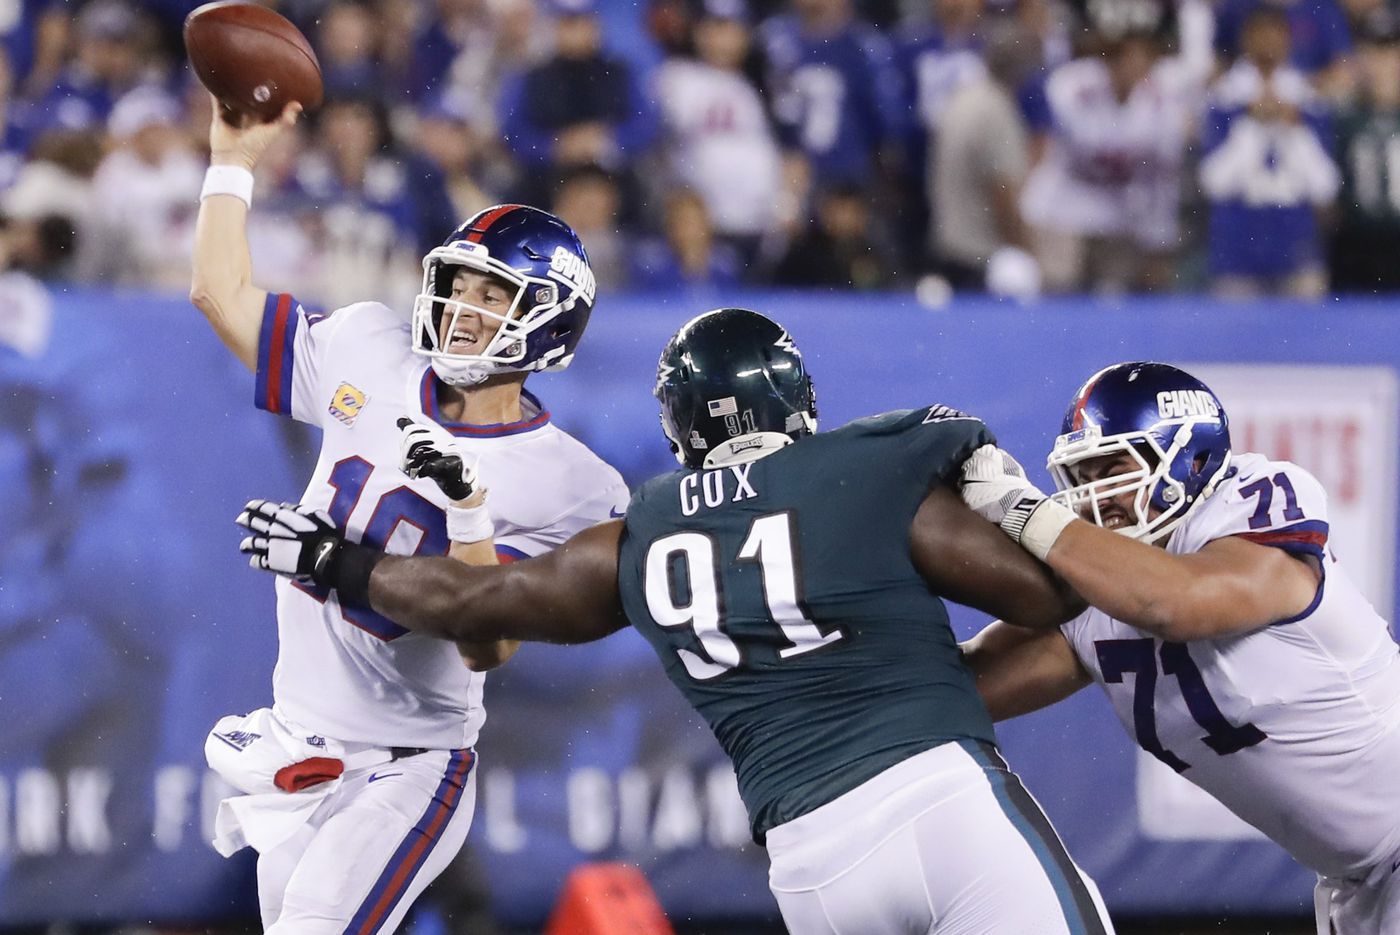 With Fletcher Cox leading the way, Eagles pass rush turned up the heat on Eli Manning